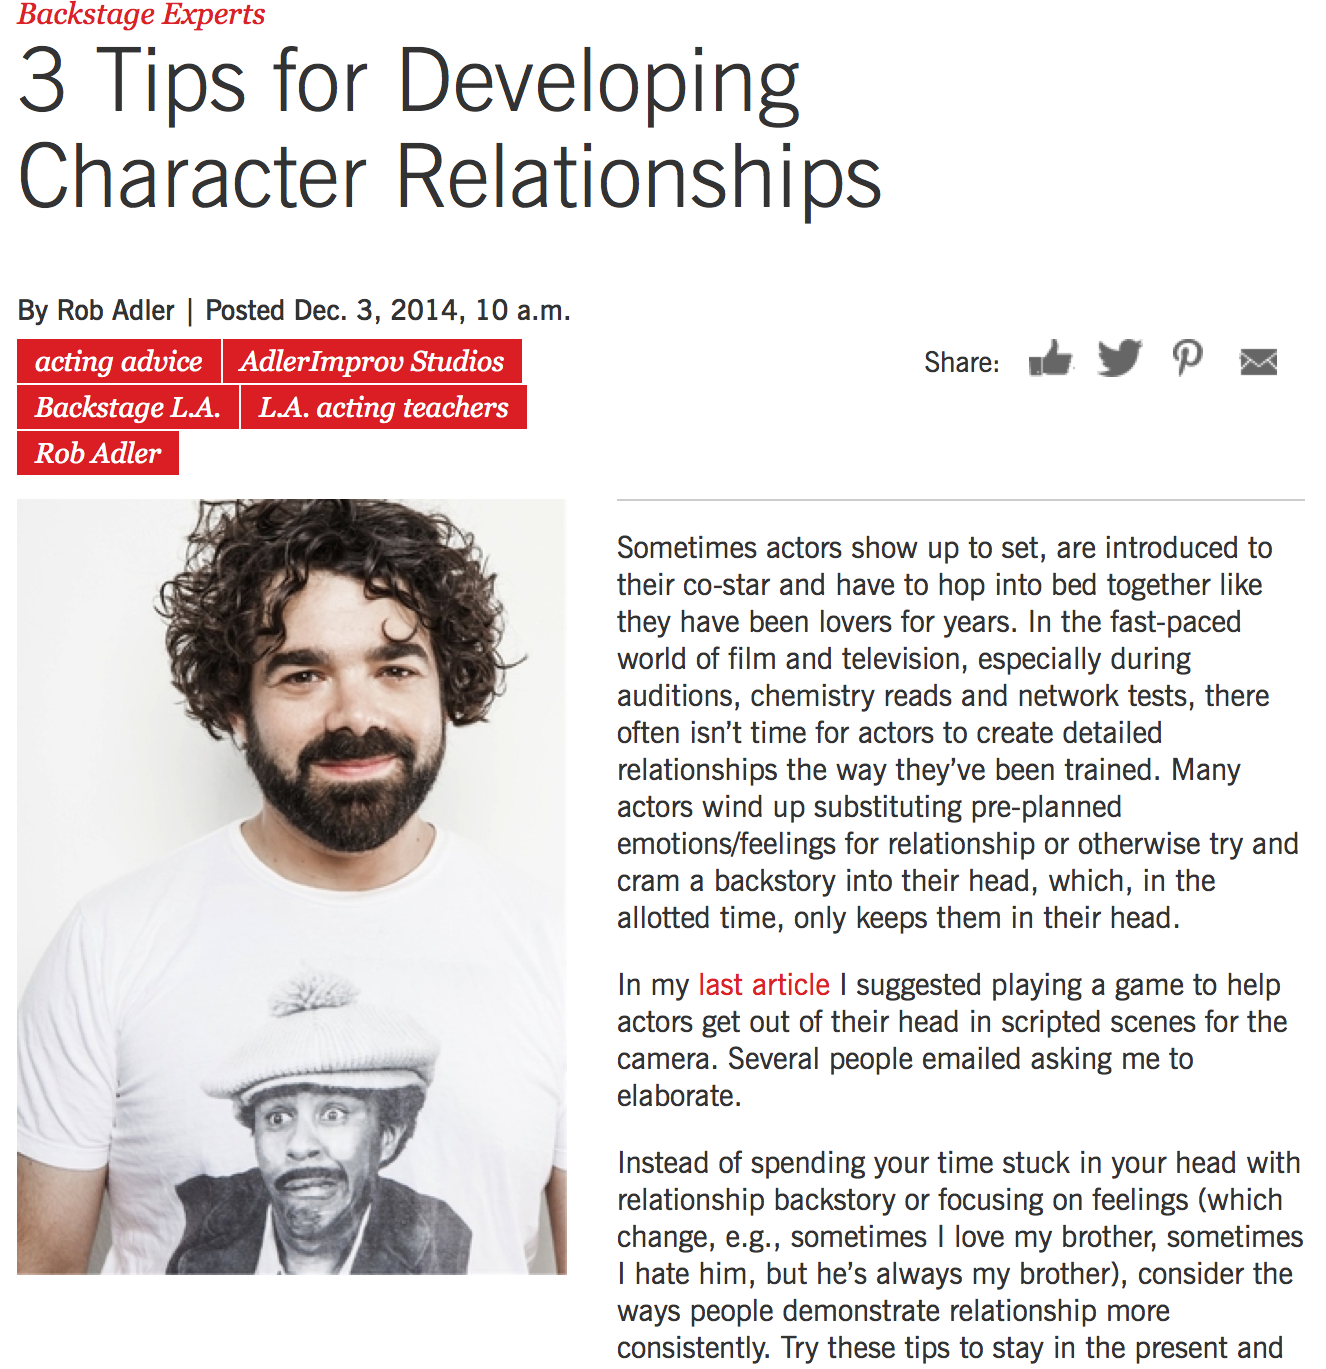 Developing Character Relationships